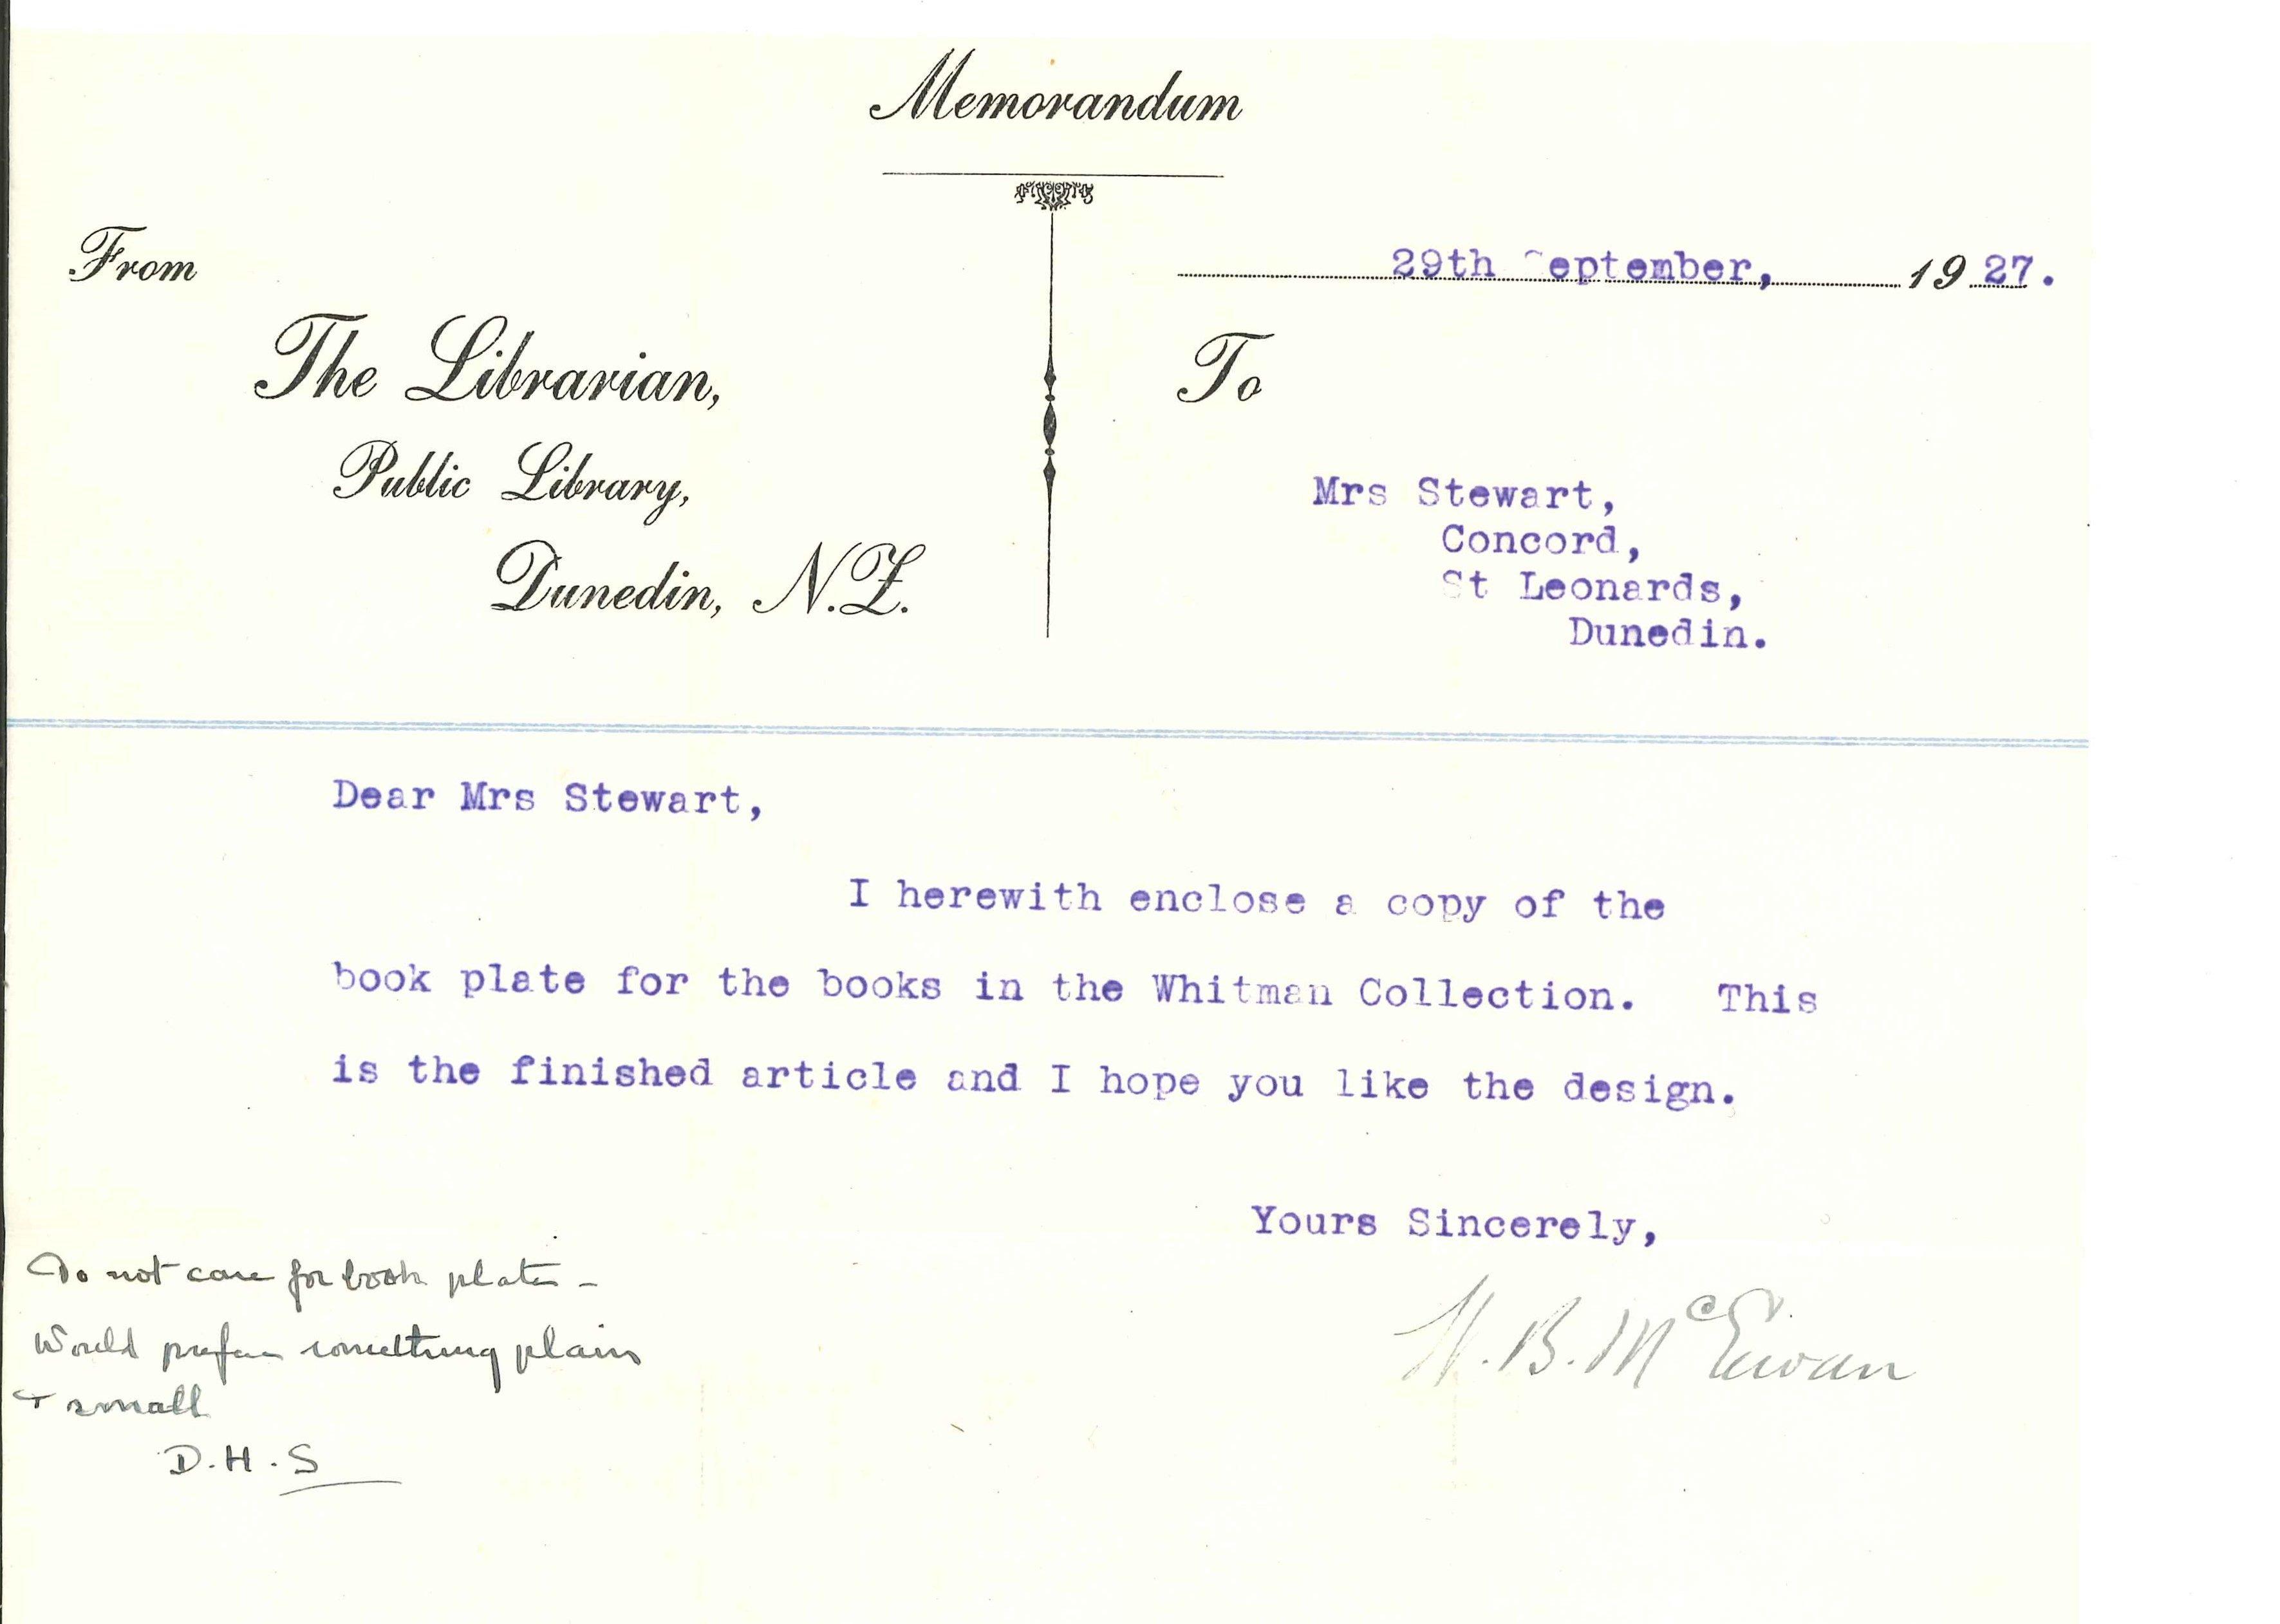 1927 memorandum from W.B. McEwen to Dorothy Trimble re Bookplate.